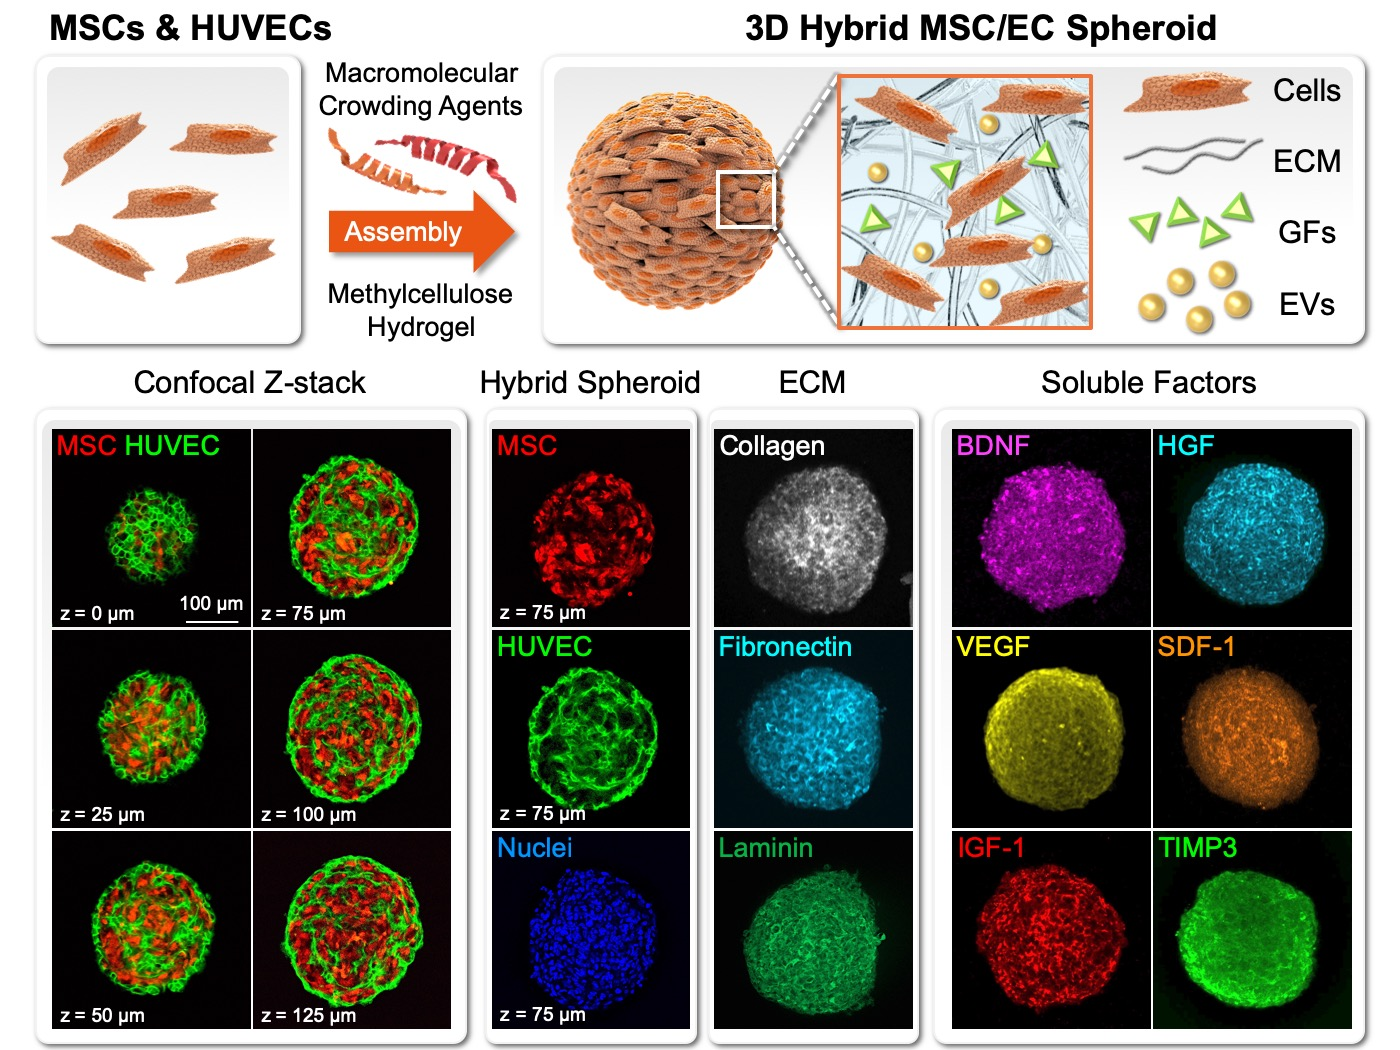 3D hybrid stem cell spheroid as a platform for cell therapy: Taking ischemic stroke treatment as an example